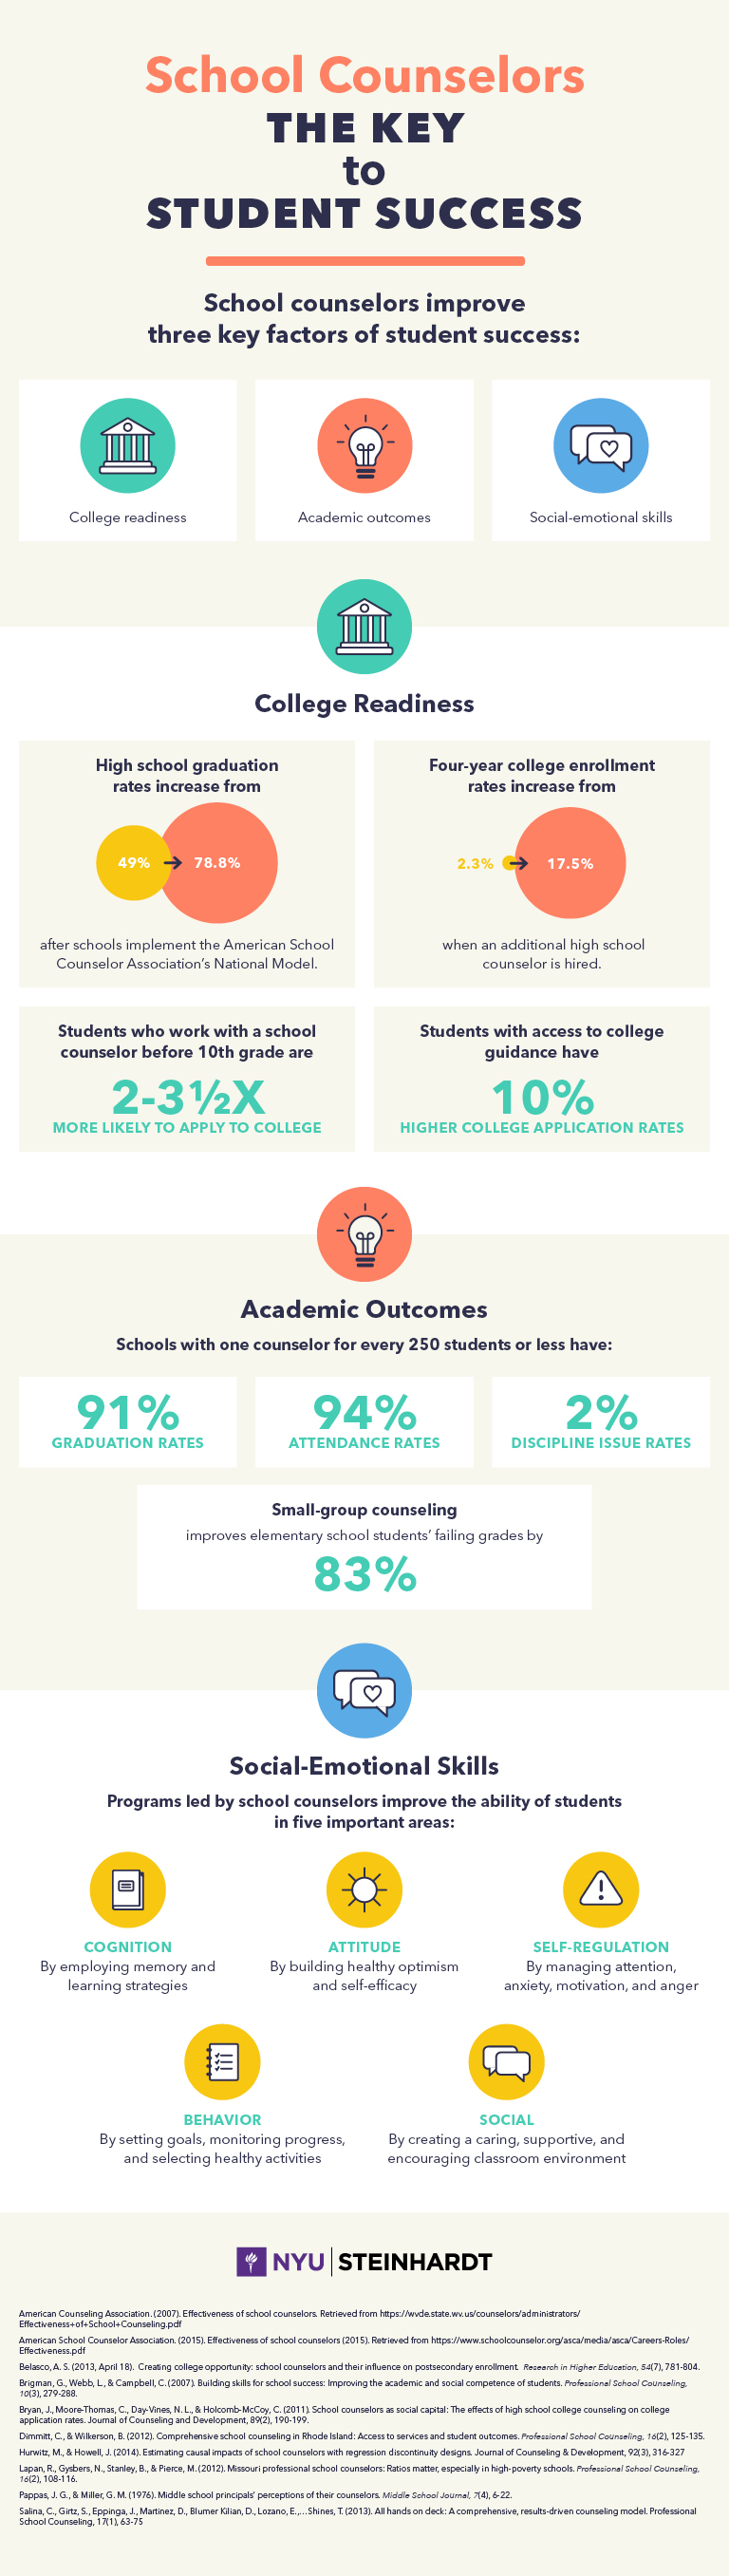 The key to student success infographic.